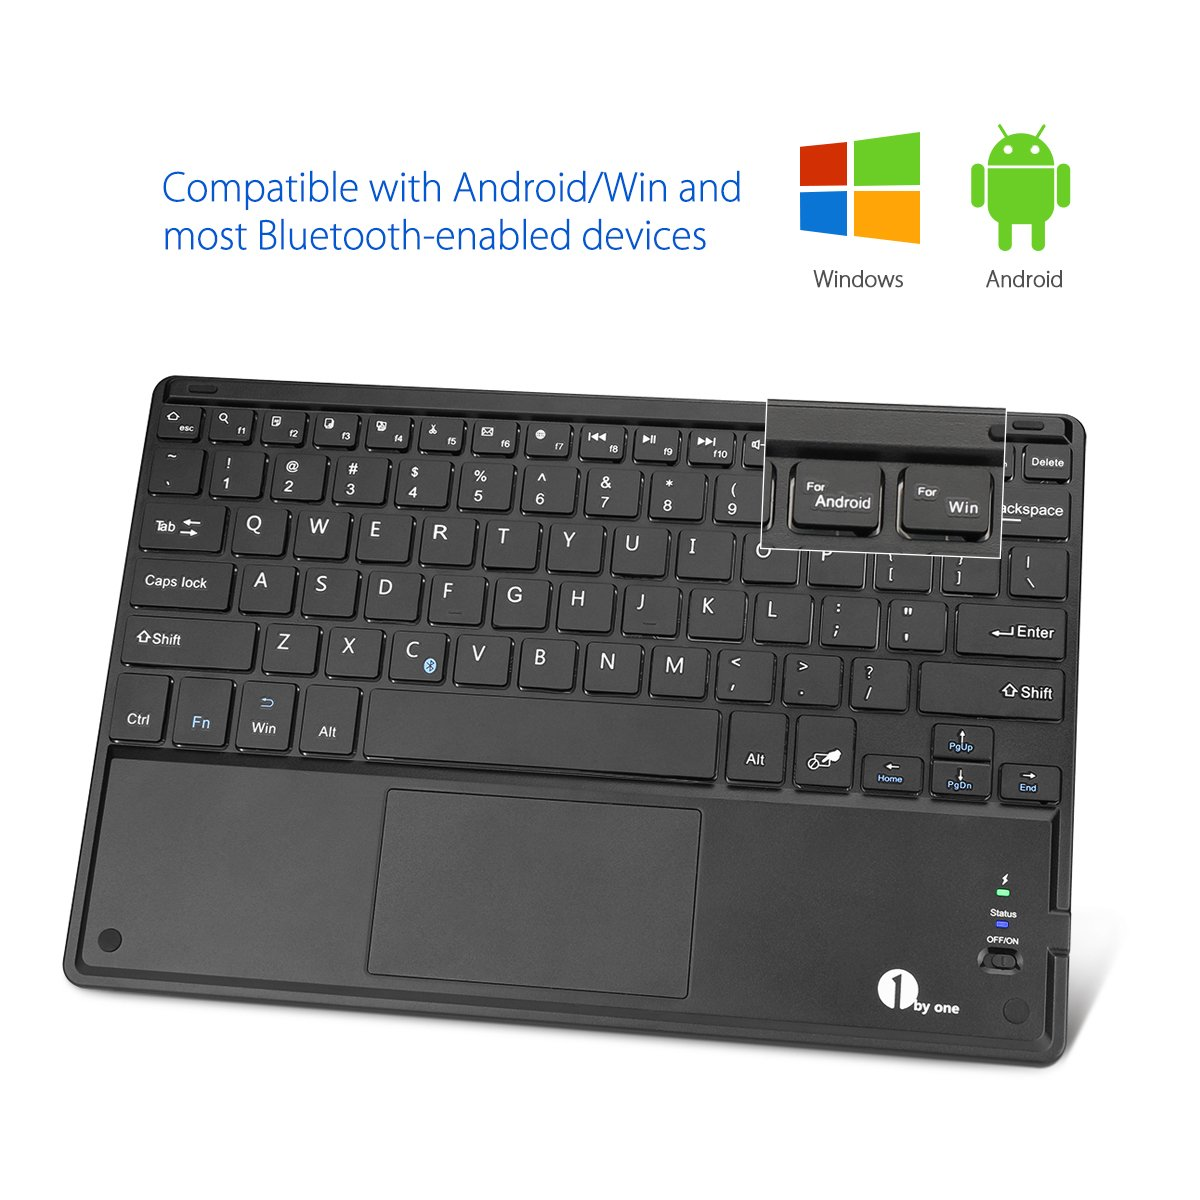 1byone Ultra-Slim Wireless Bluetooth Keyboard with Built-in Multi-touch Touchpad and Rechargeable Battery for Android and Windows, Black by 1byone (Image #4)